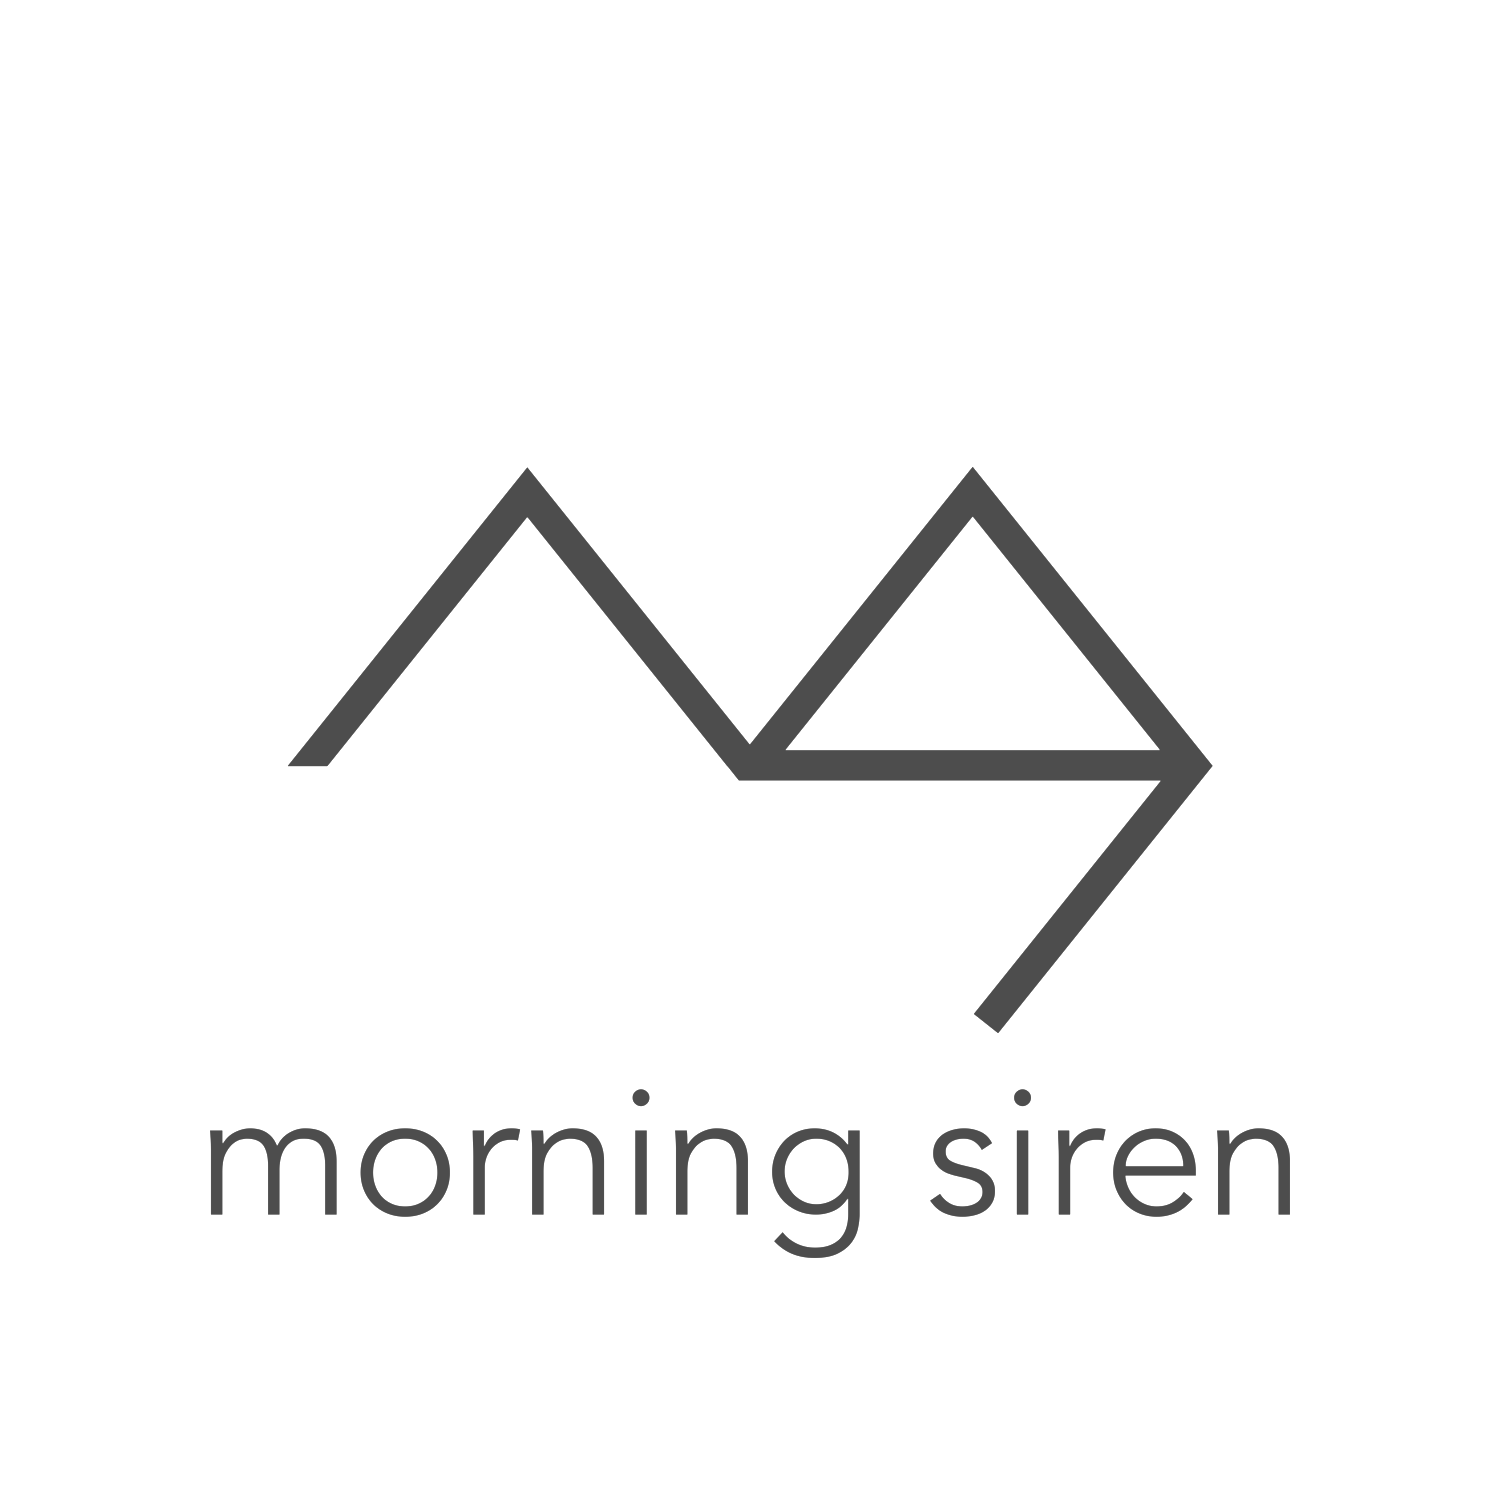 Morning Siren